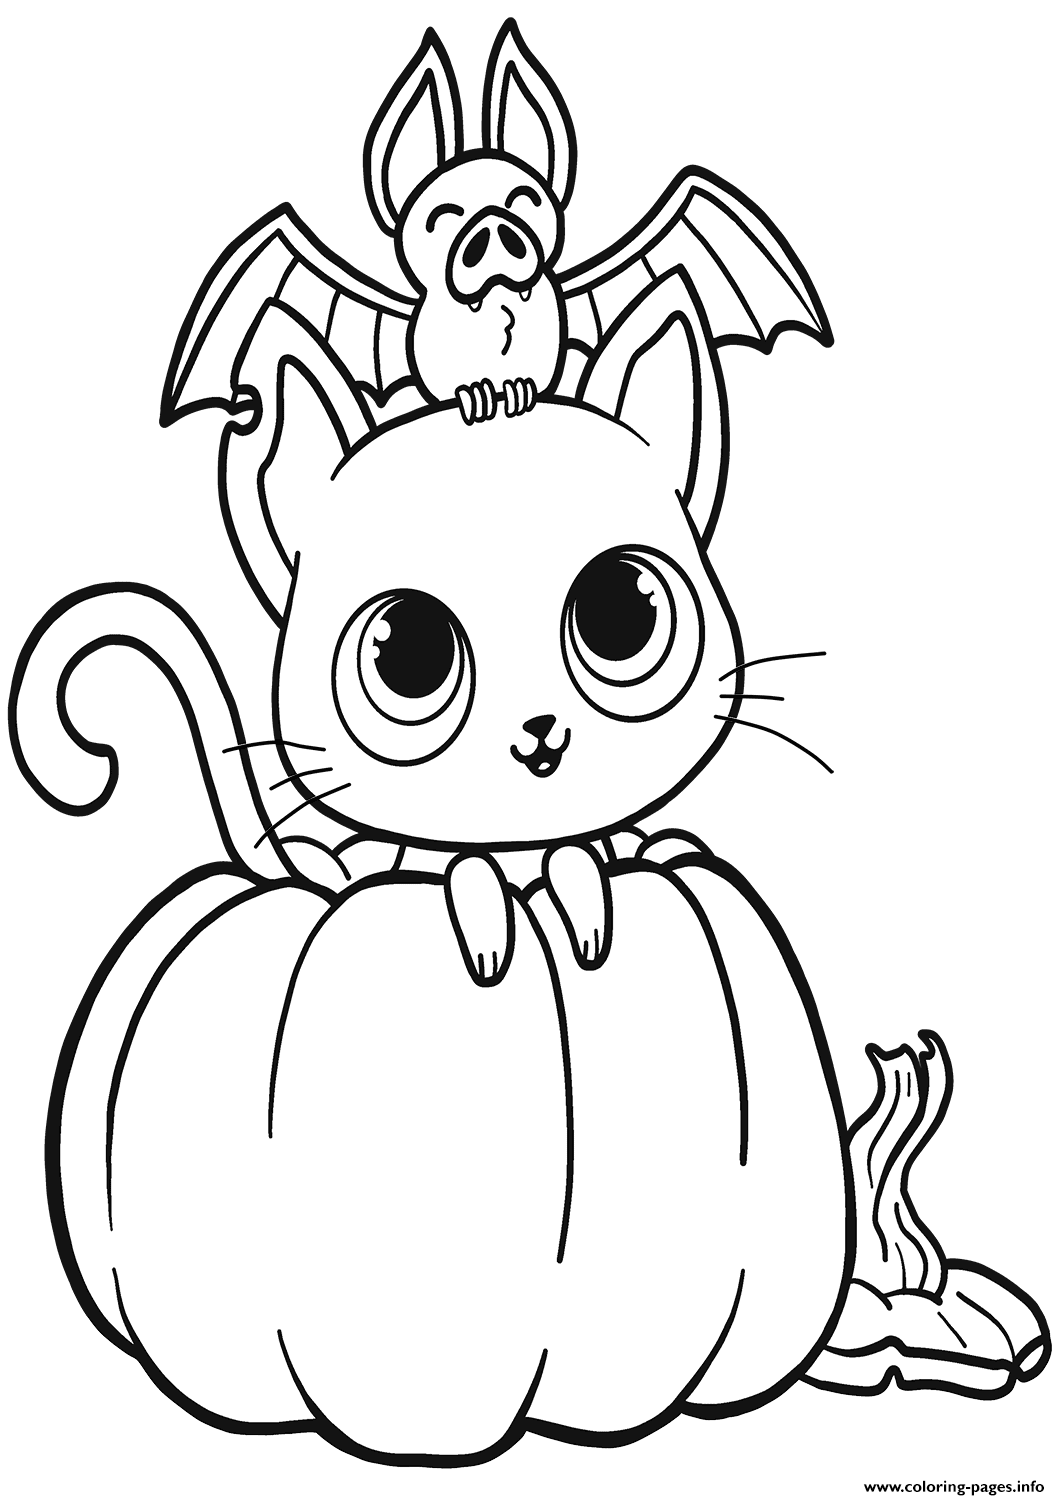 halloween cat coloring page cat with pumpkin coloring page my fairytale town in 2020 coloring halloween cat page